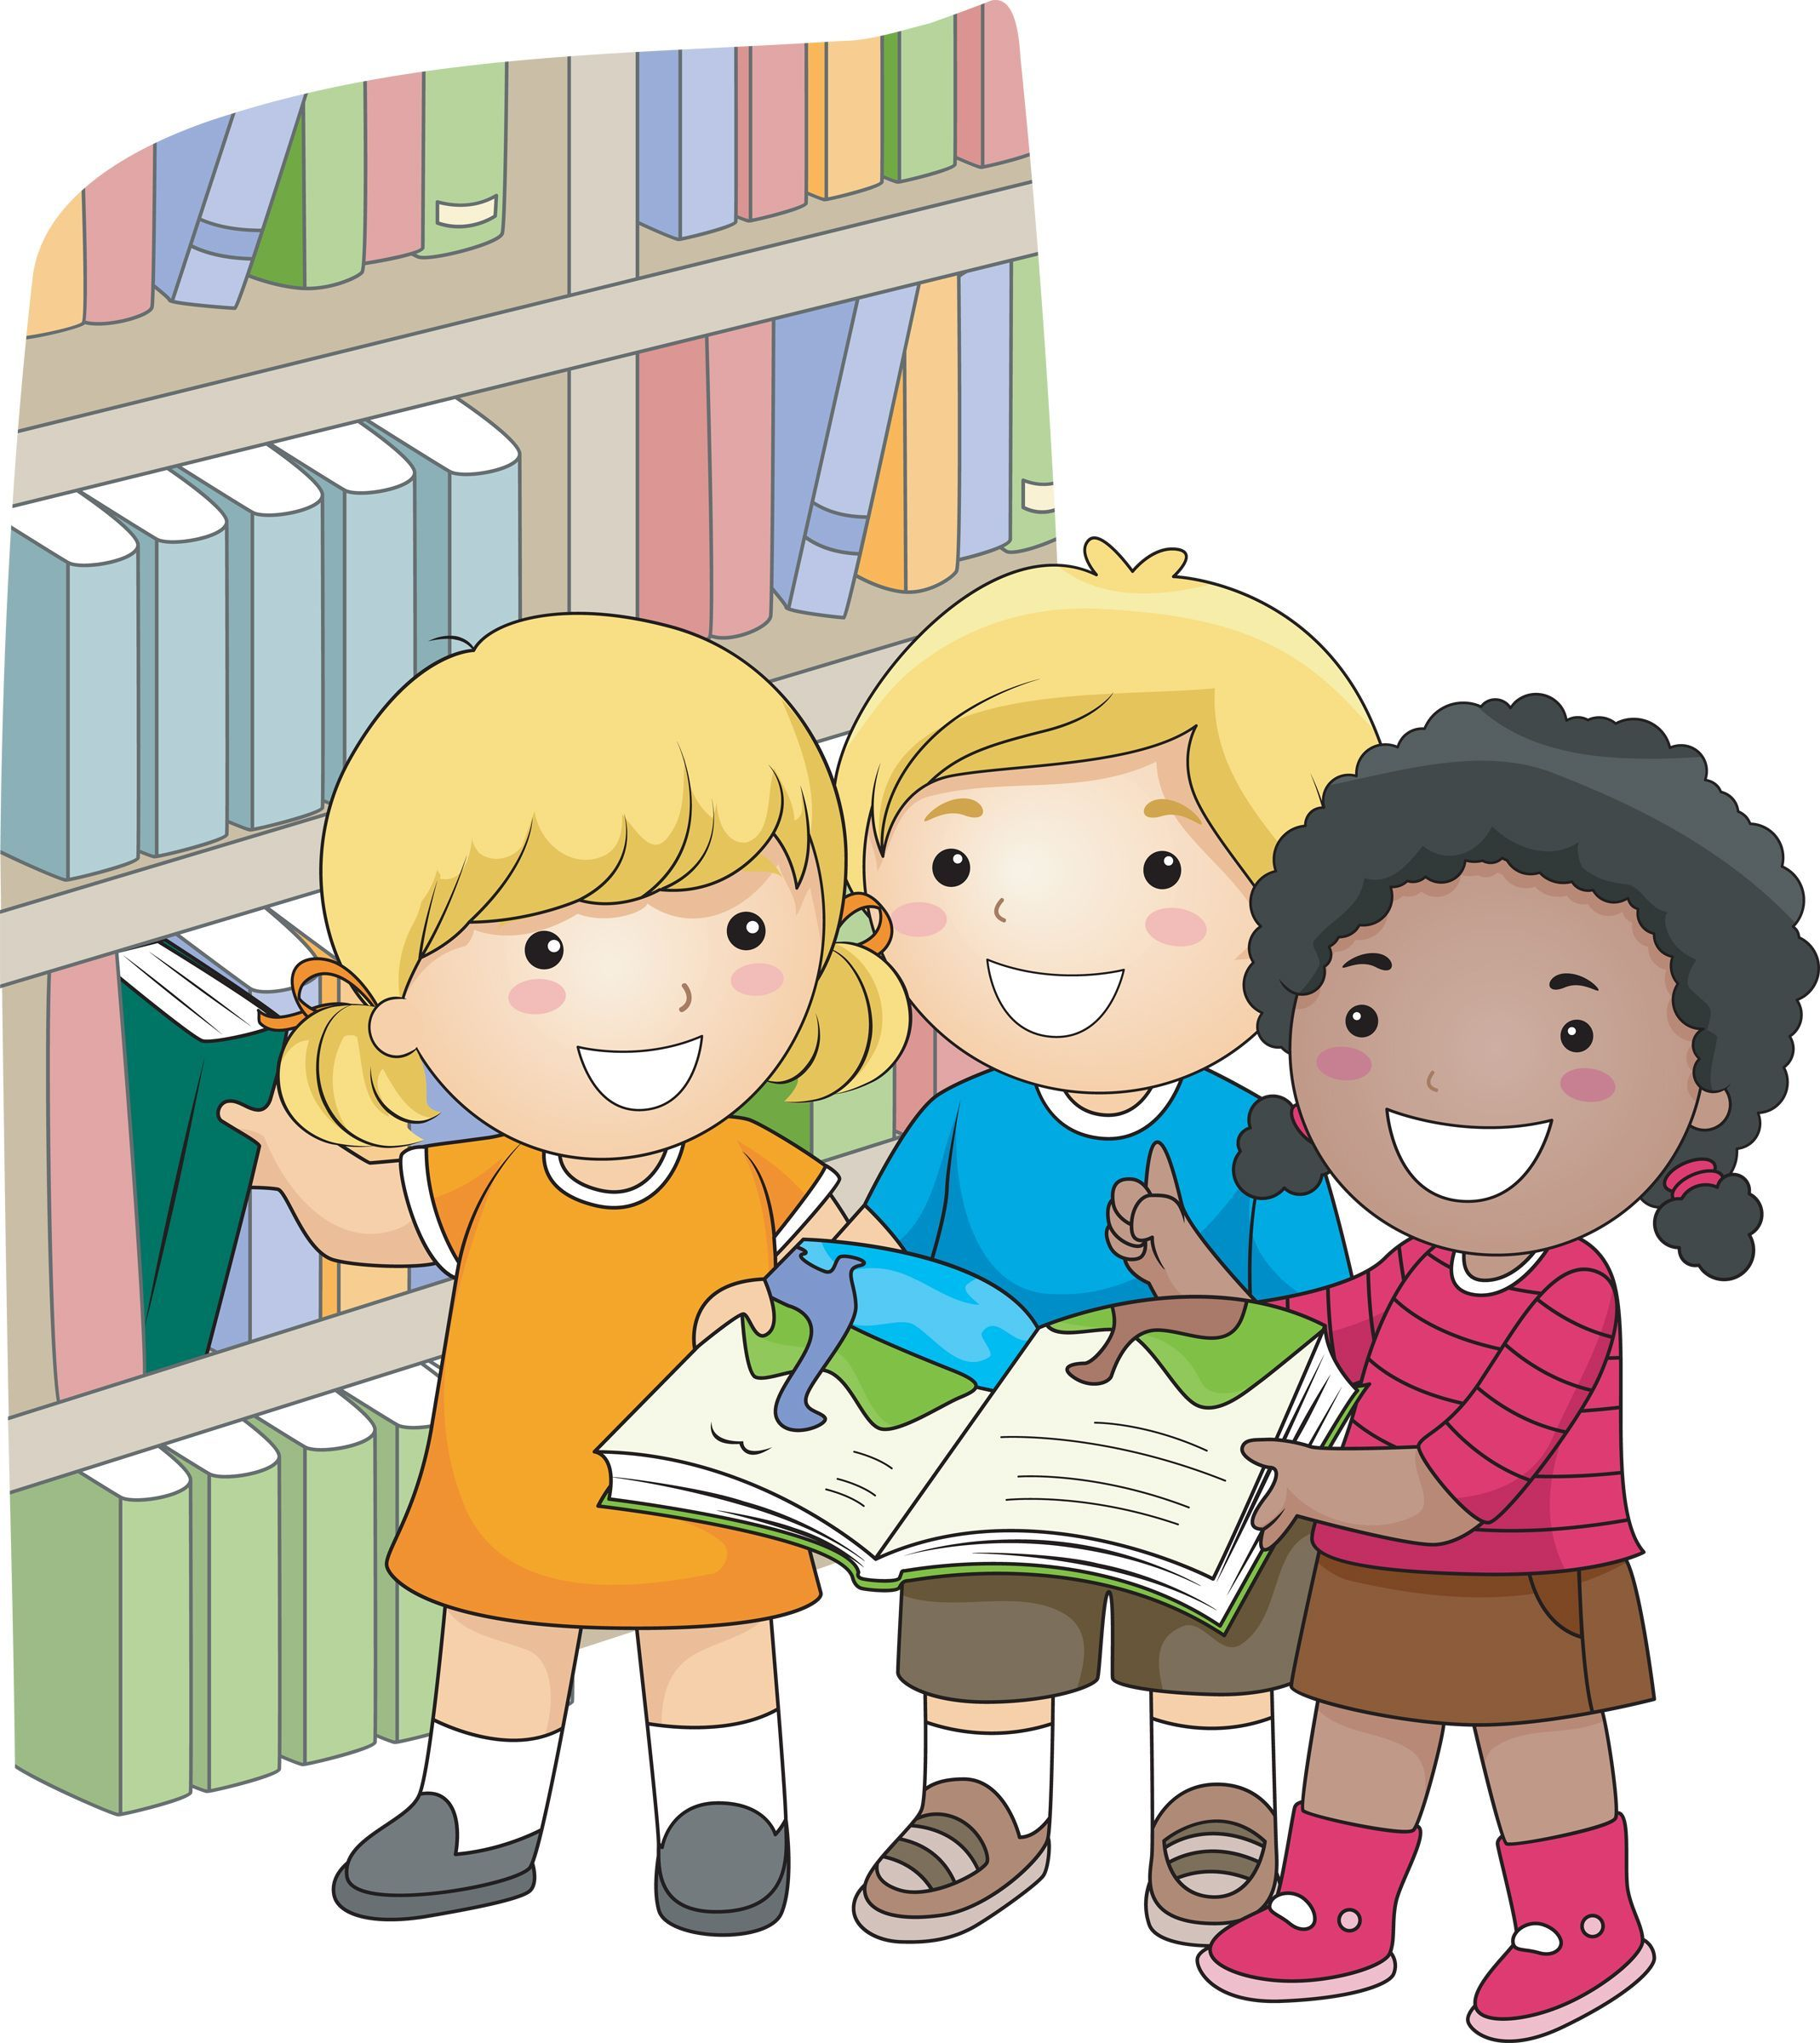 Child working clipart image freeuse Child working clipart 4 » Clipart Portal image freeuse